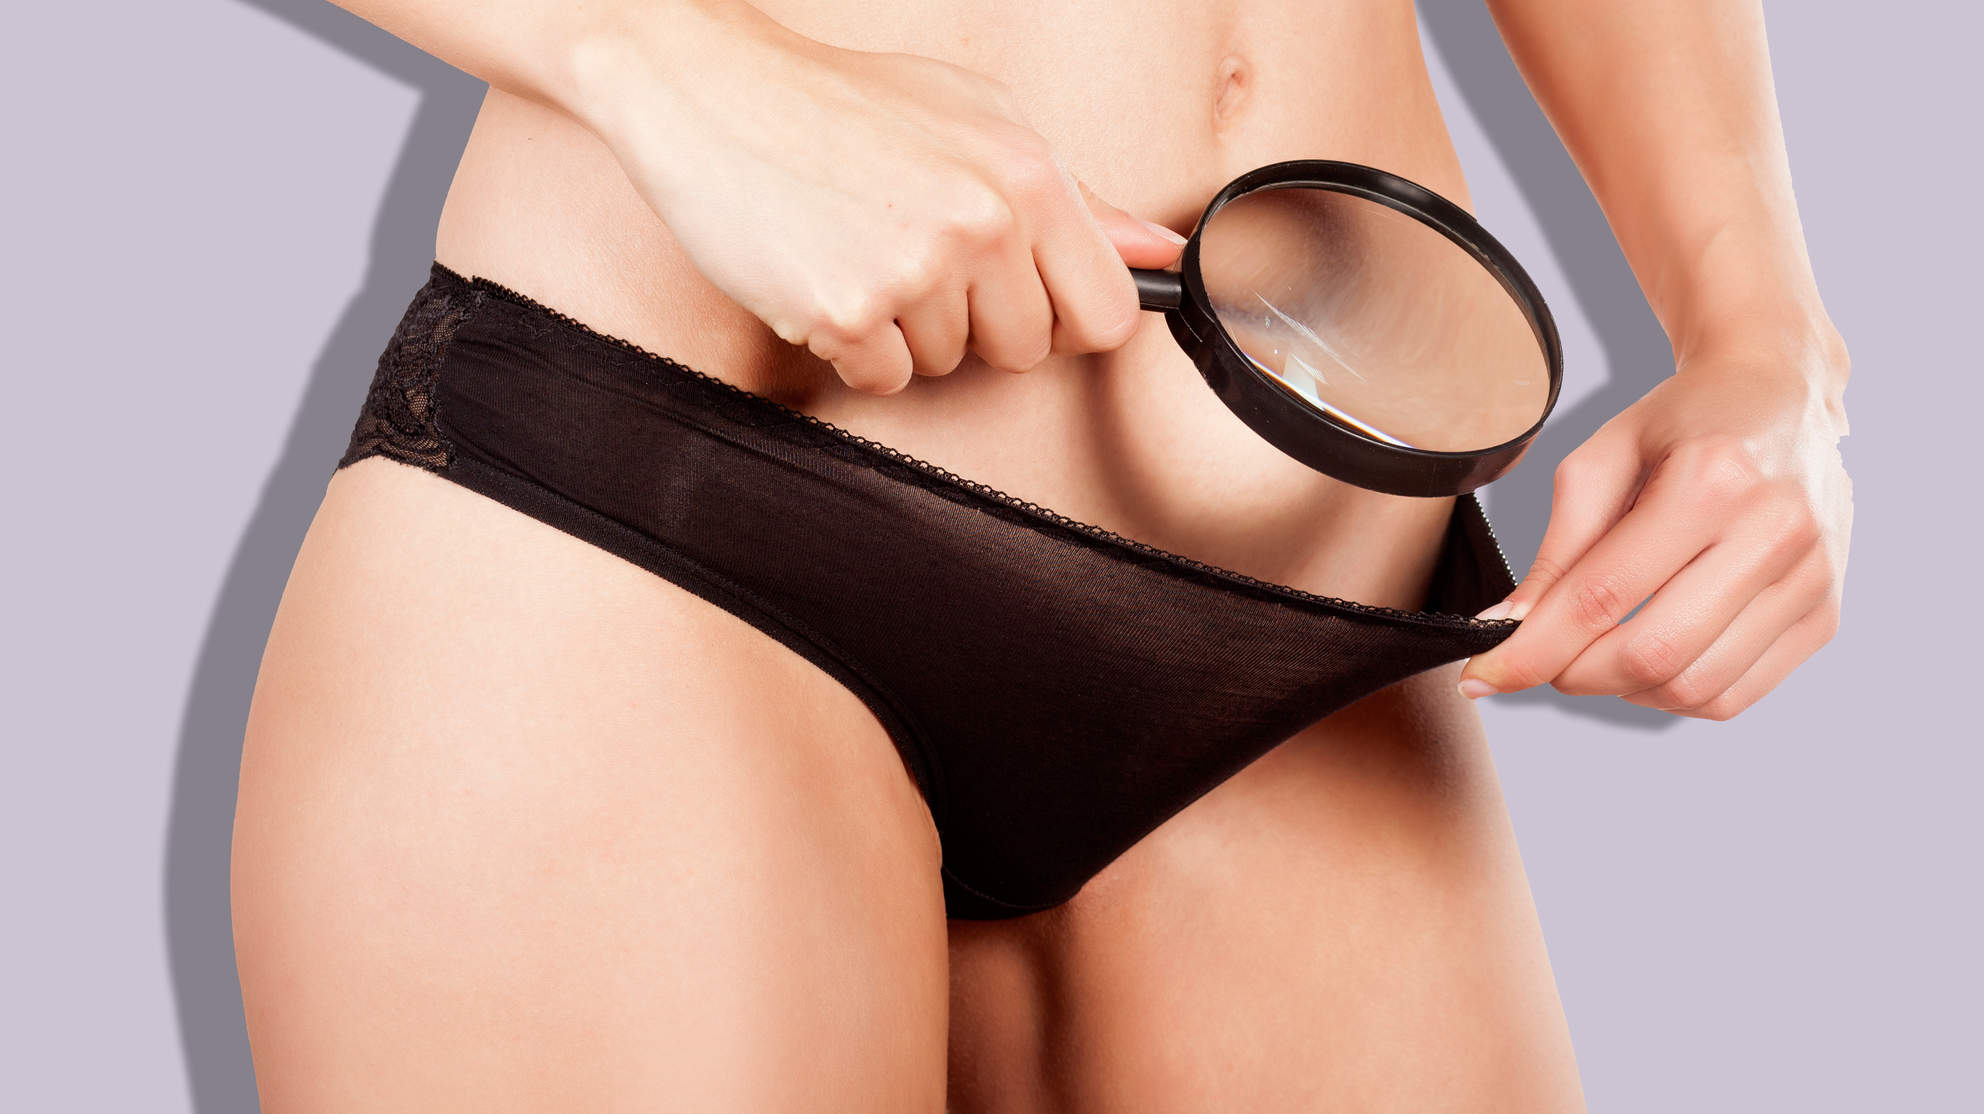 10 Eye-Opening Facts You Actually Didn't Know About Vaginas, Sex, Orgasms, and More